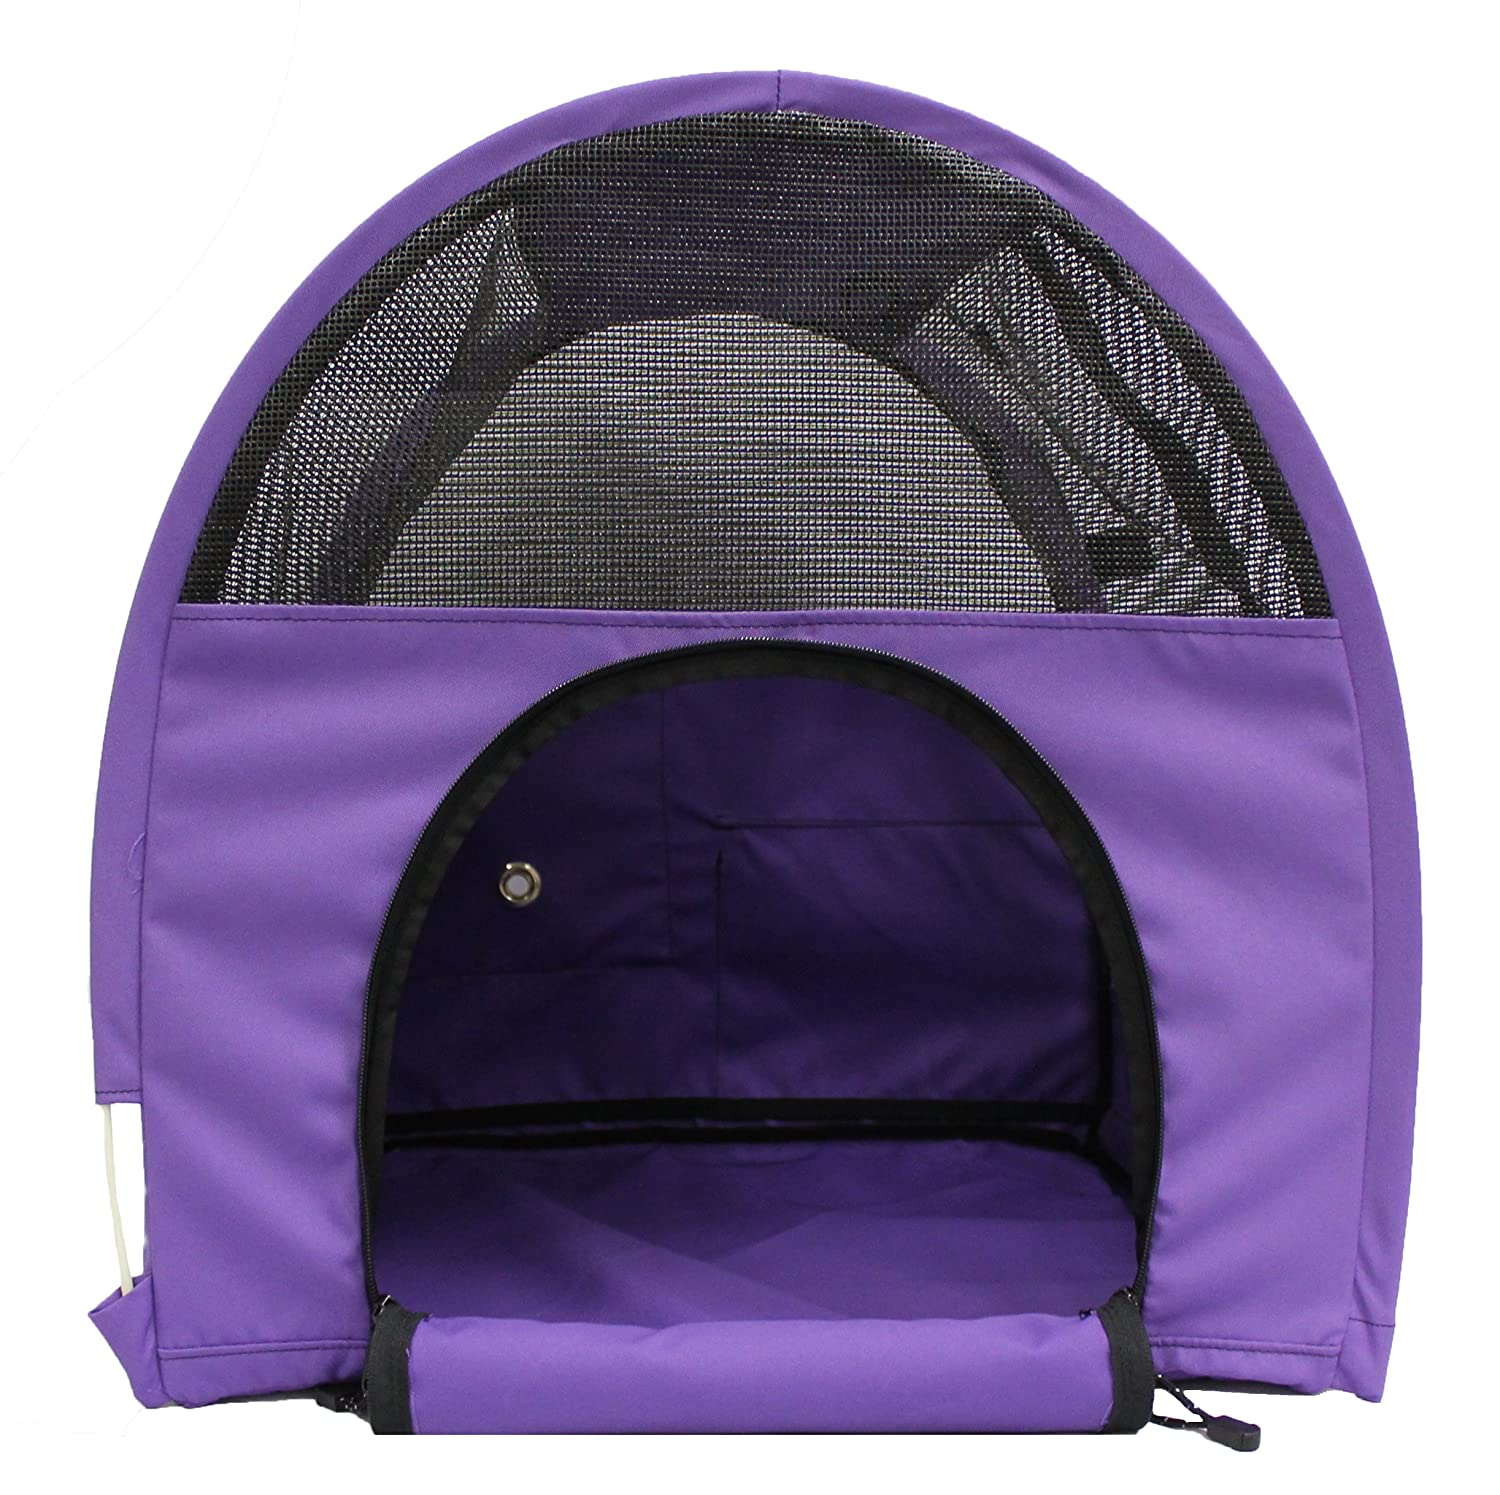 Amazon.com : Sturdi Products Car-Go Single Pop-Up Pet Shelter, Purple : Pet Supplies